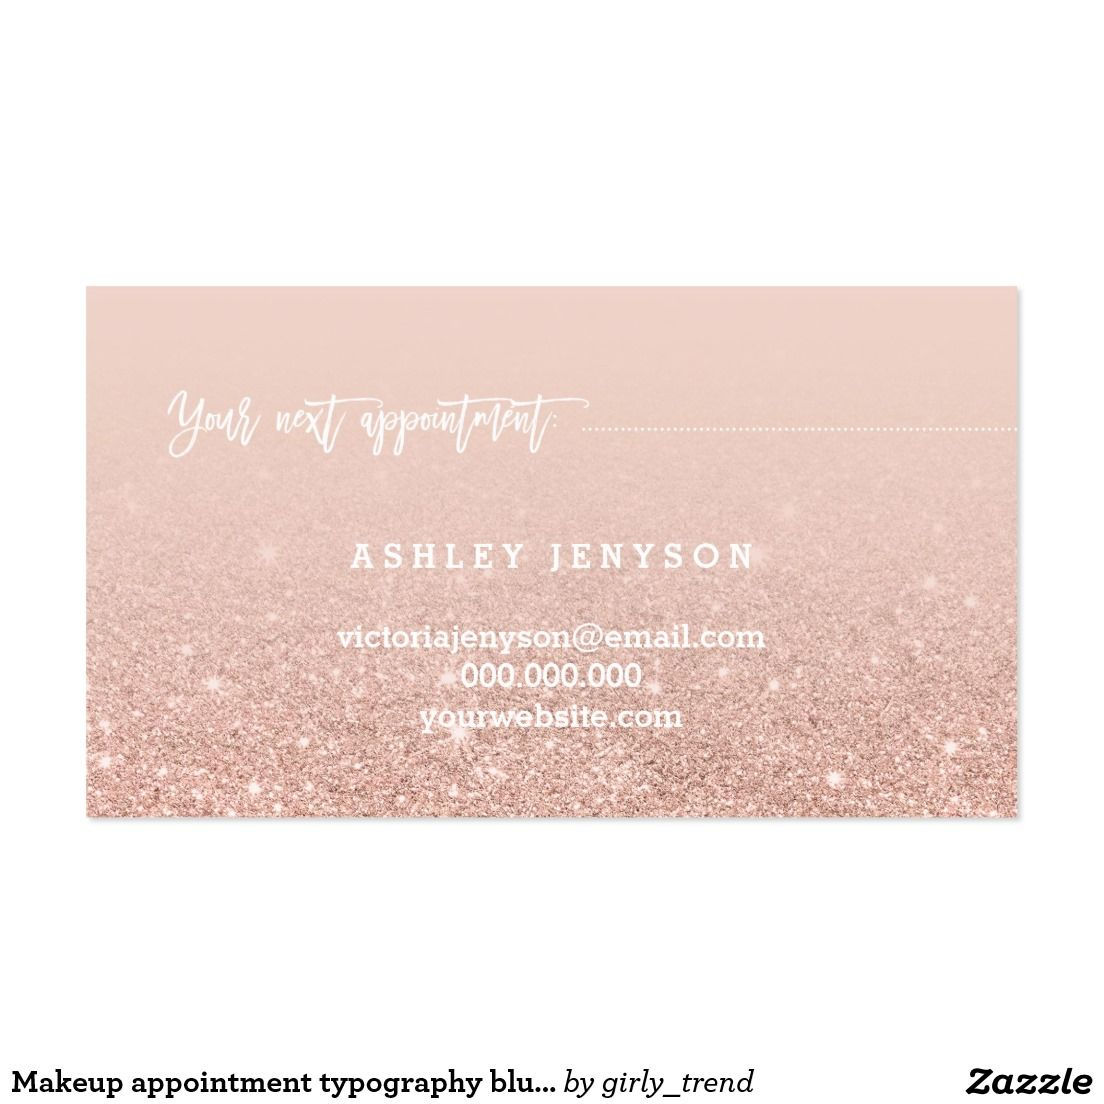 Makeup appointment typography blush rose gold business card ...